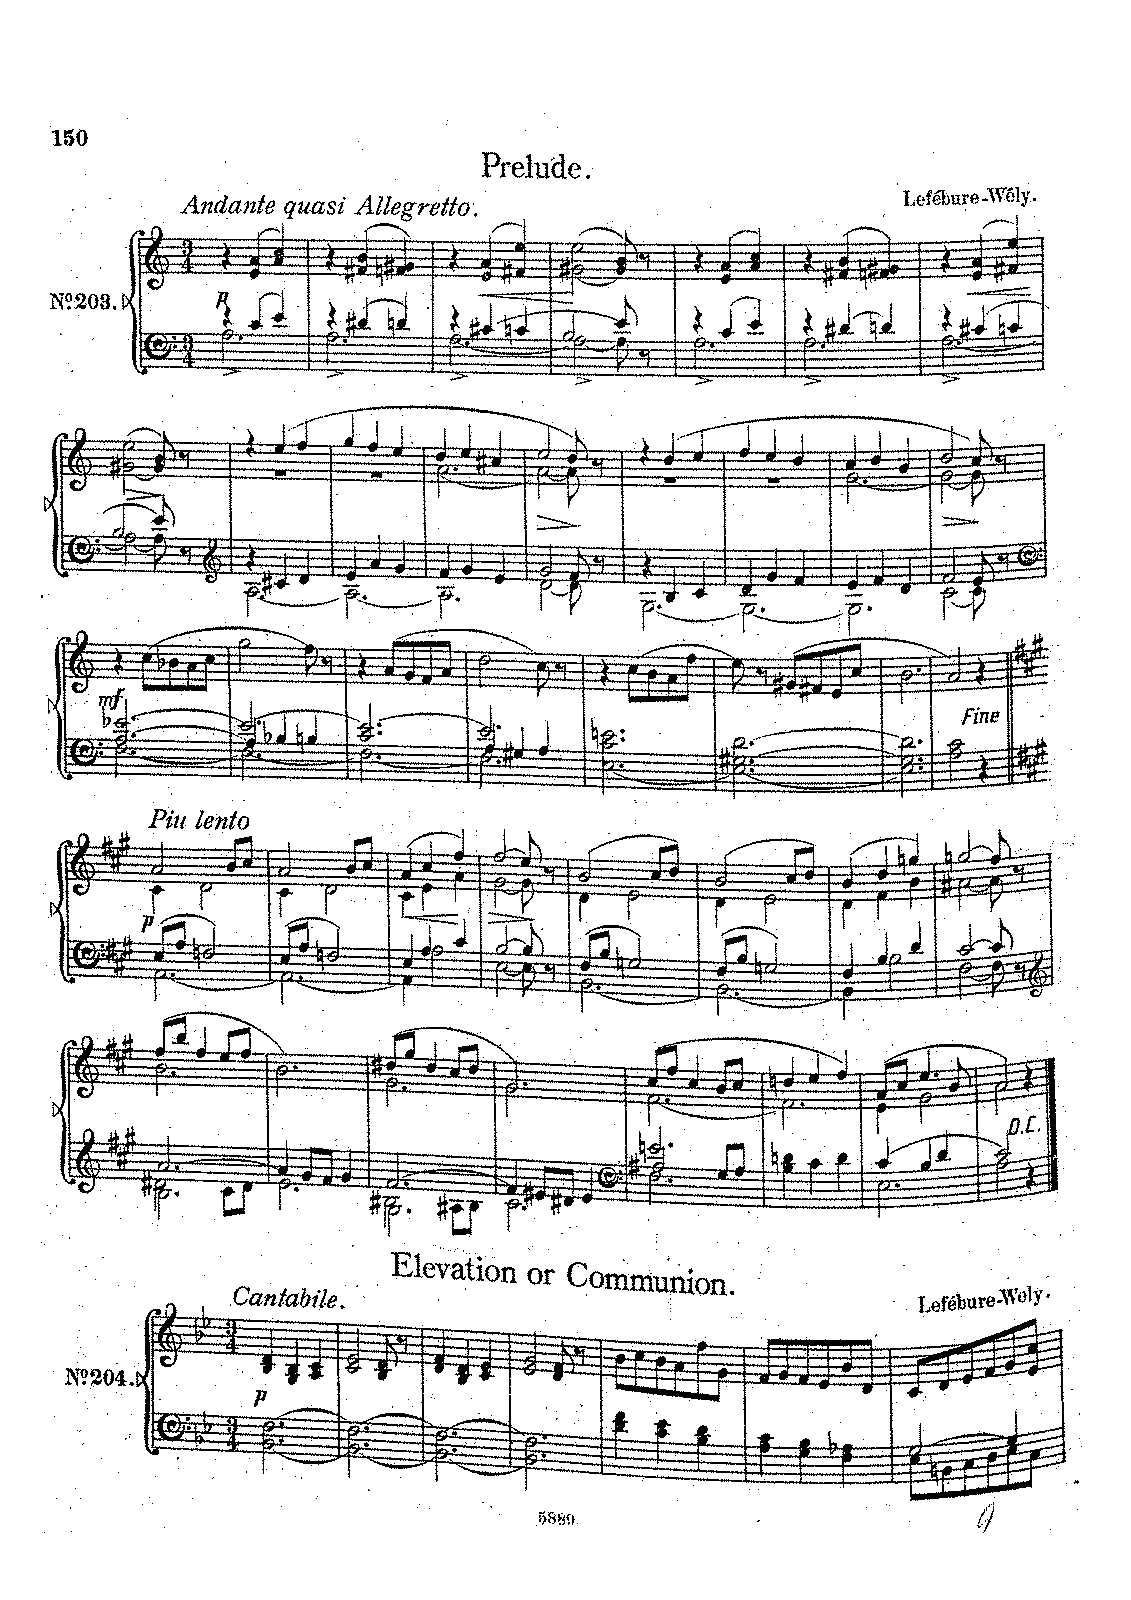 PMLP445653-Lefébure-Wély, Prelude in A Minor, Elliott, Voluntaries.pdf